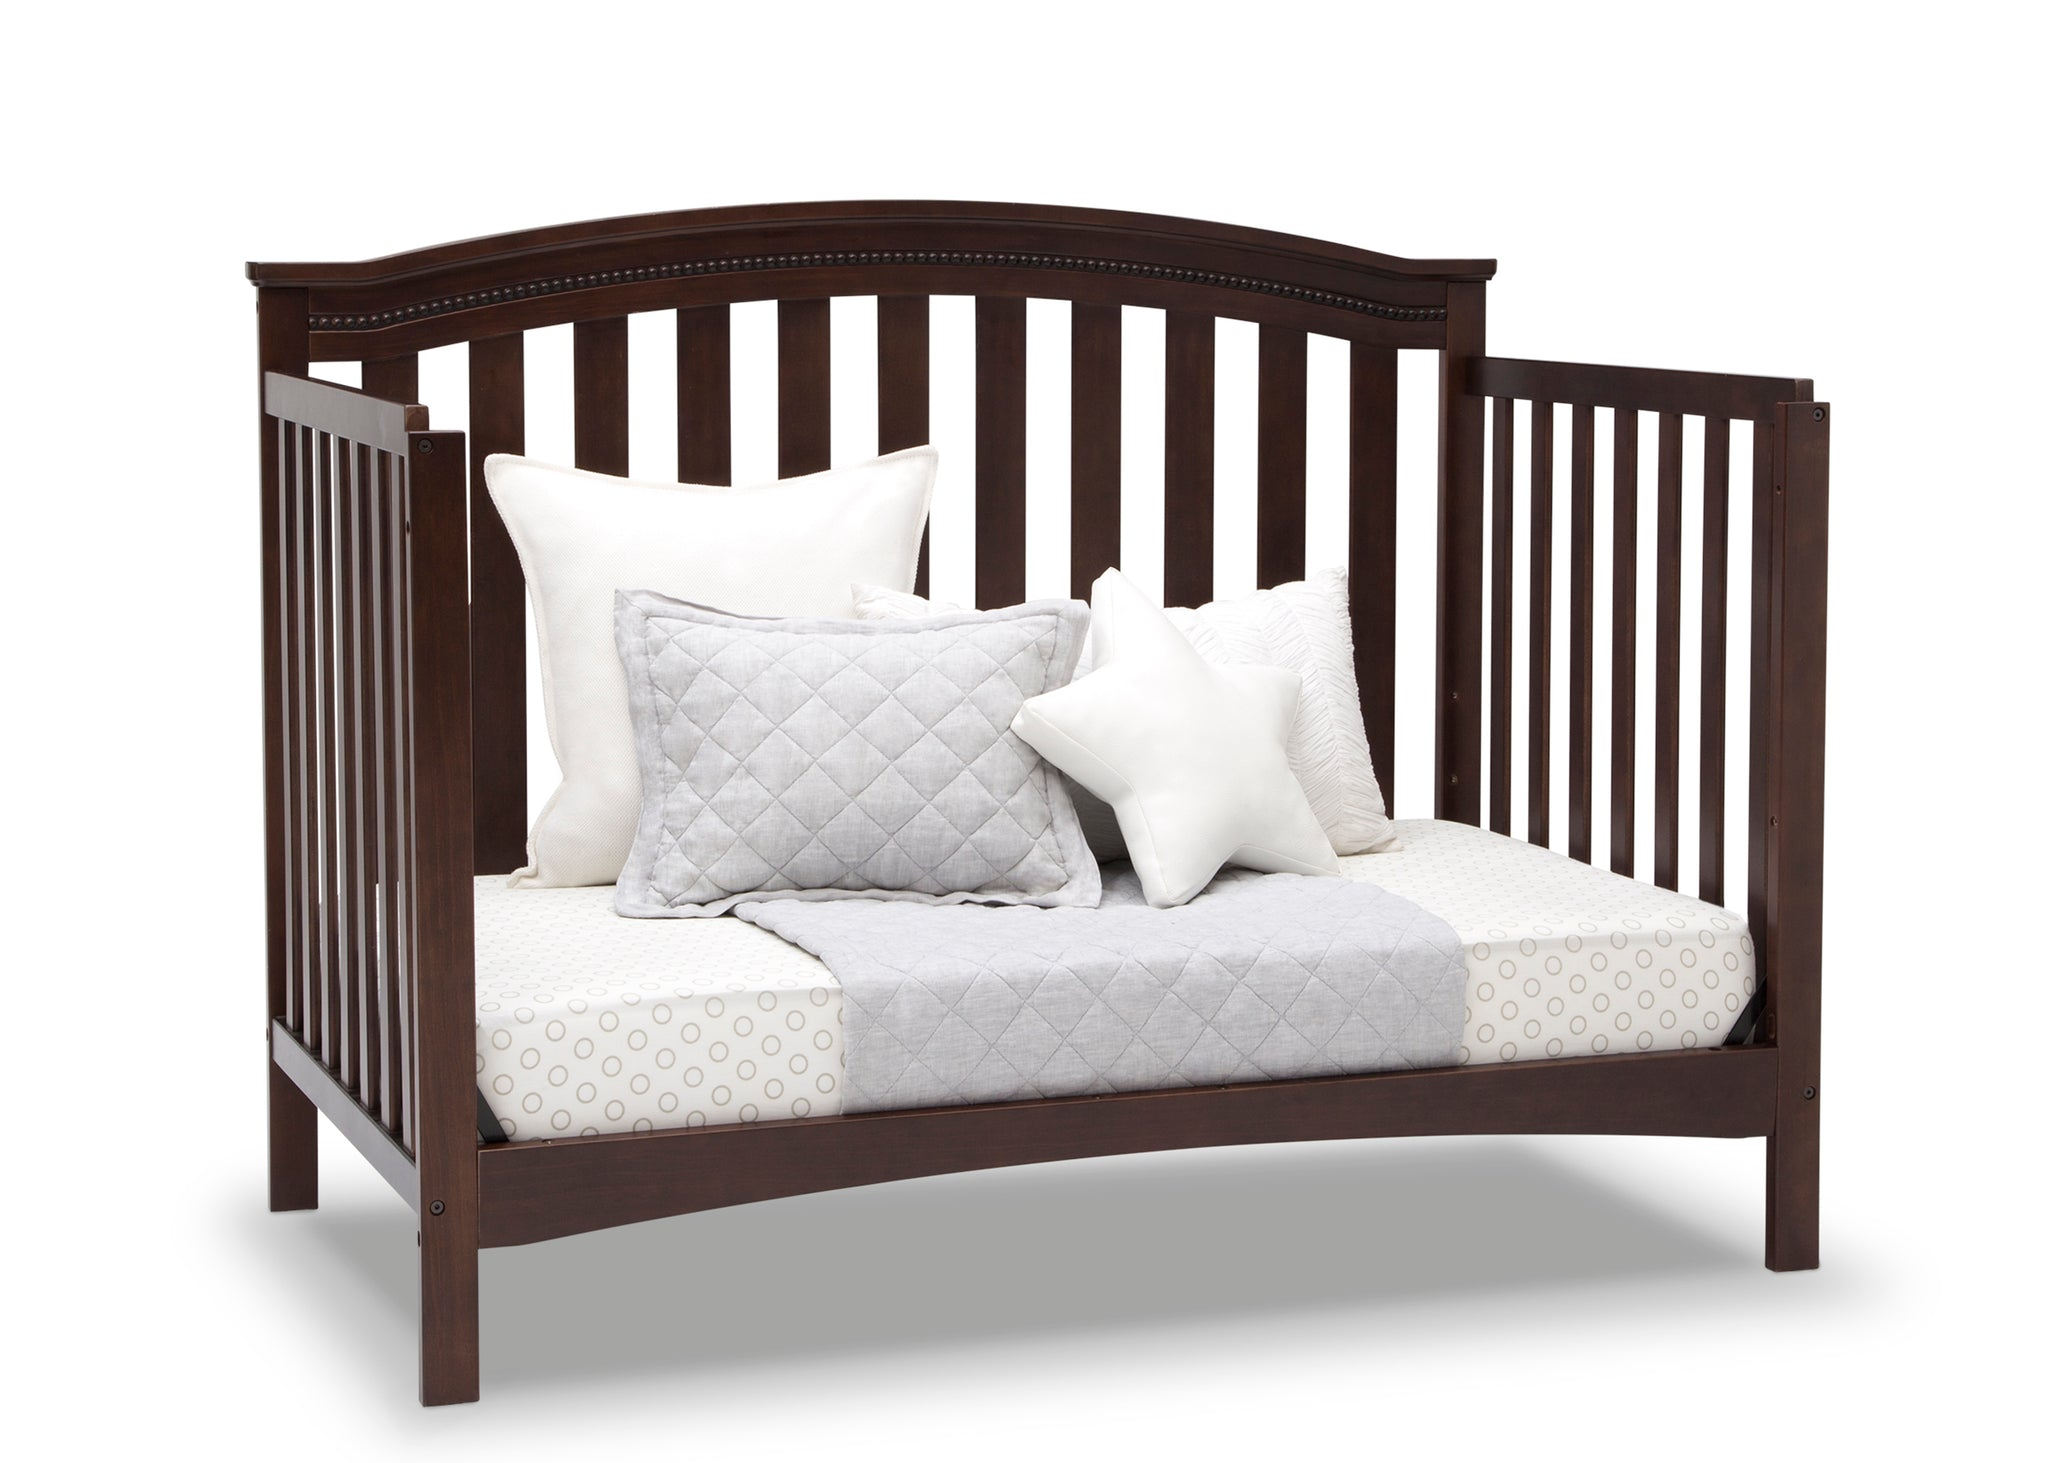 Delta Children Walnut Espresso (1324) Waverly 6-in-1 Convertible Crib, Right Day Bed Silo View